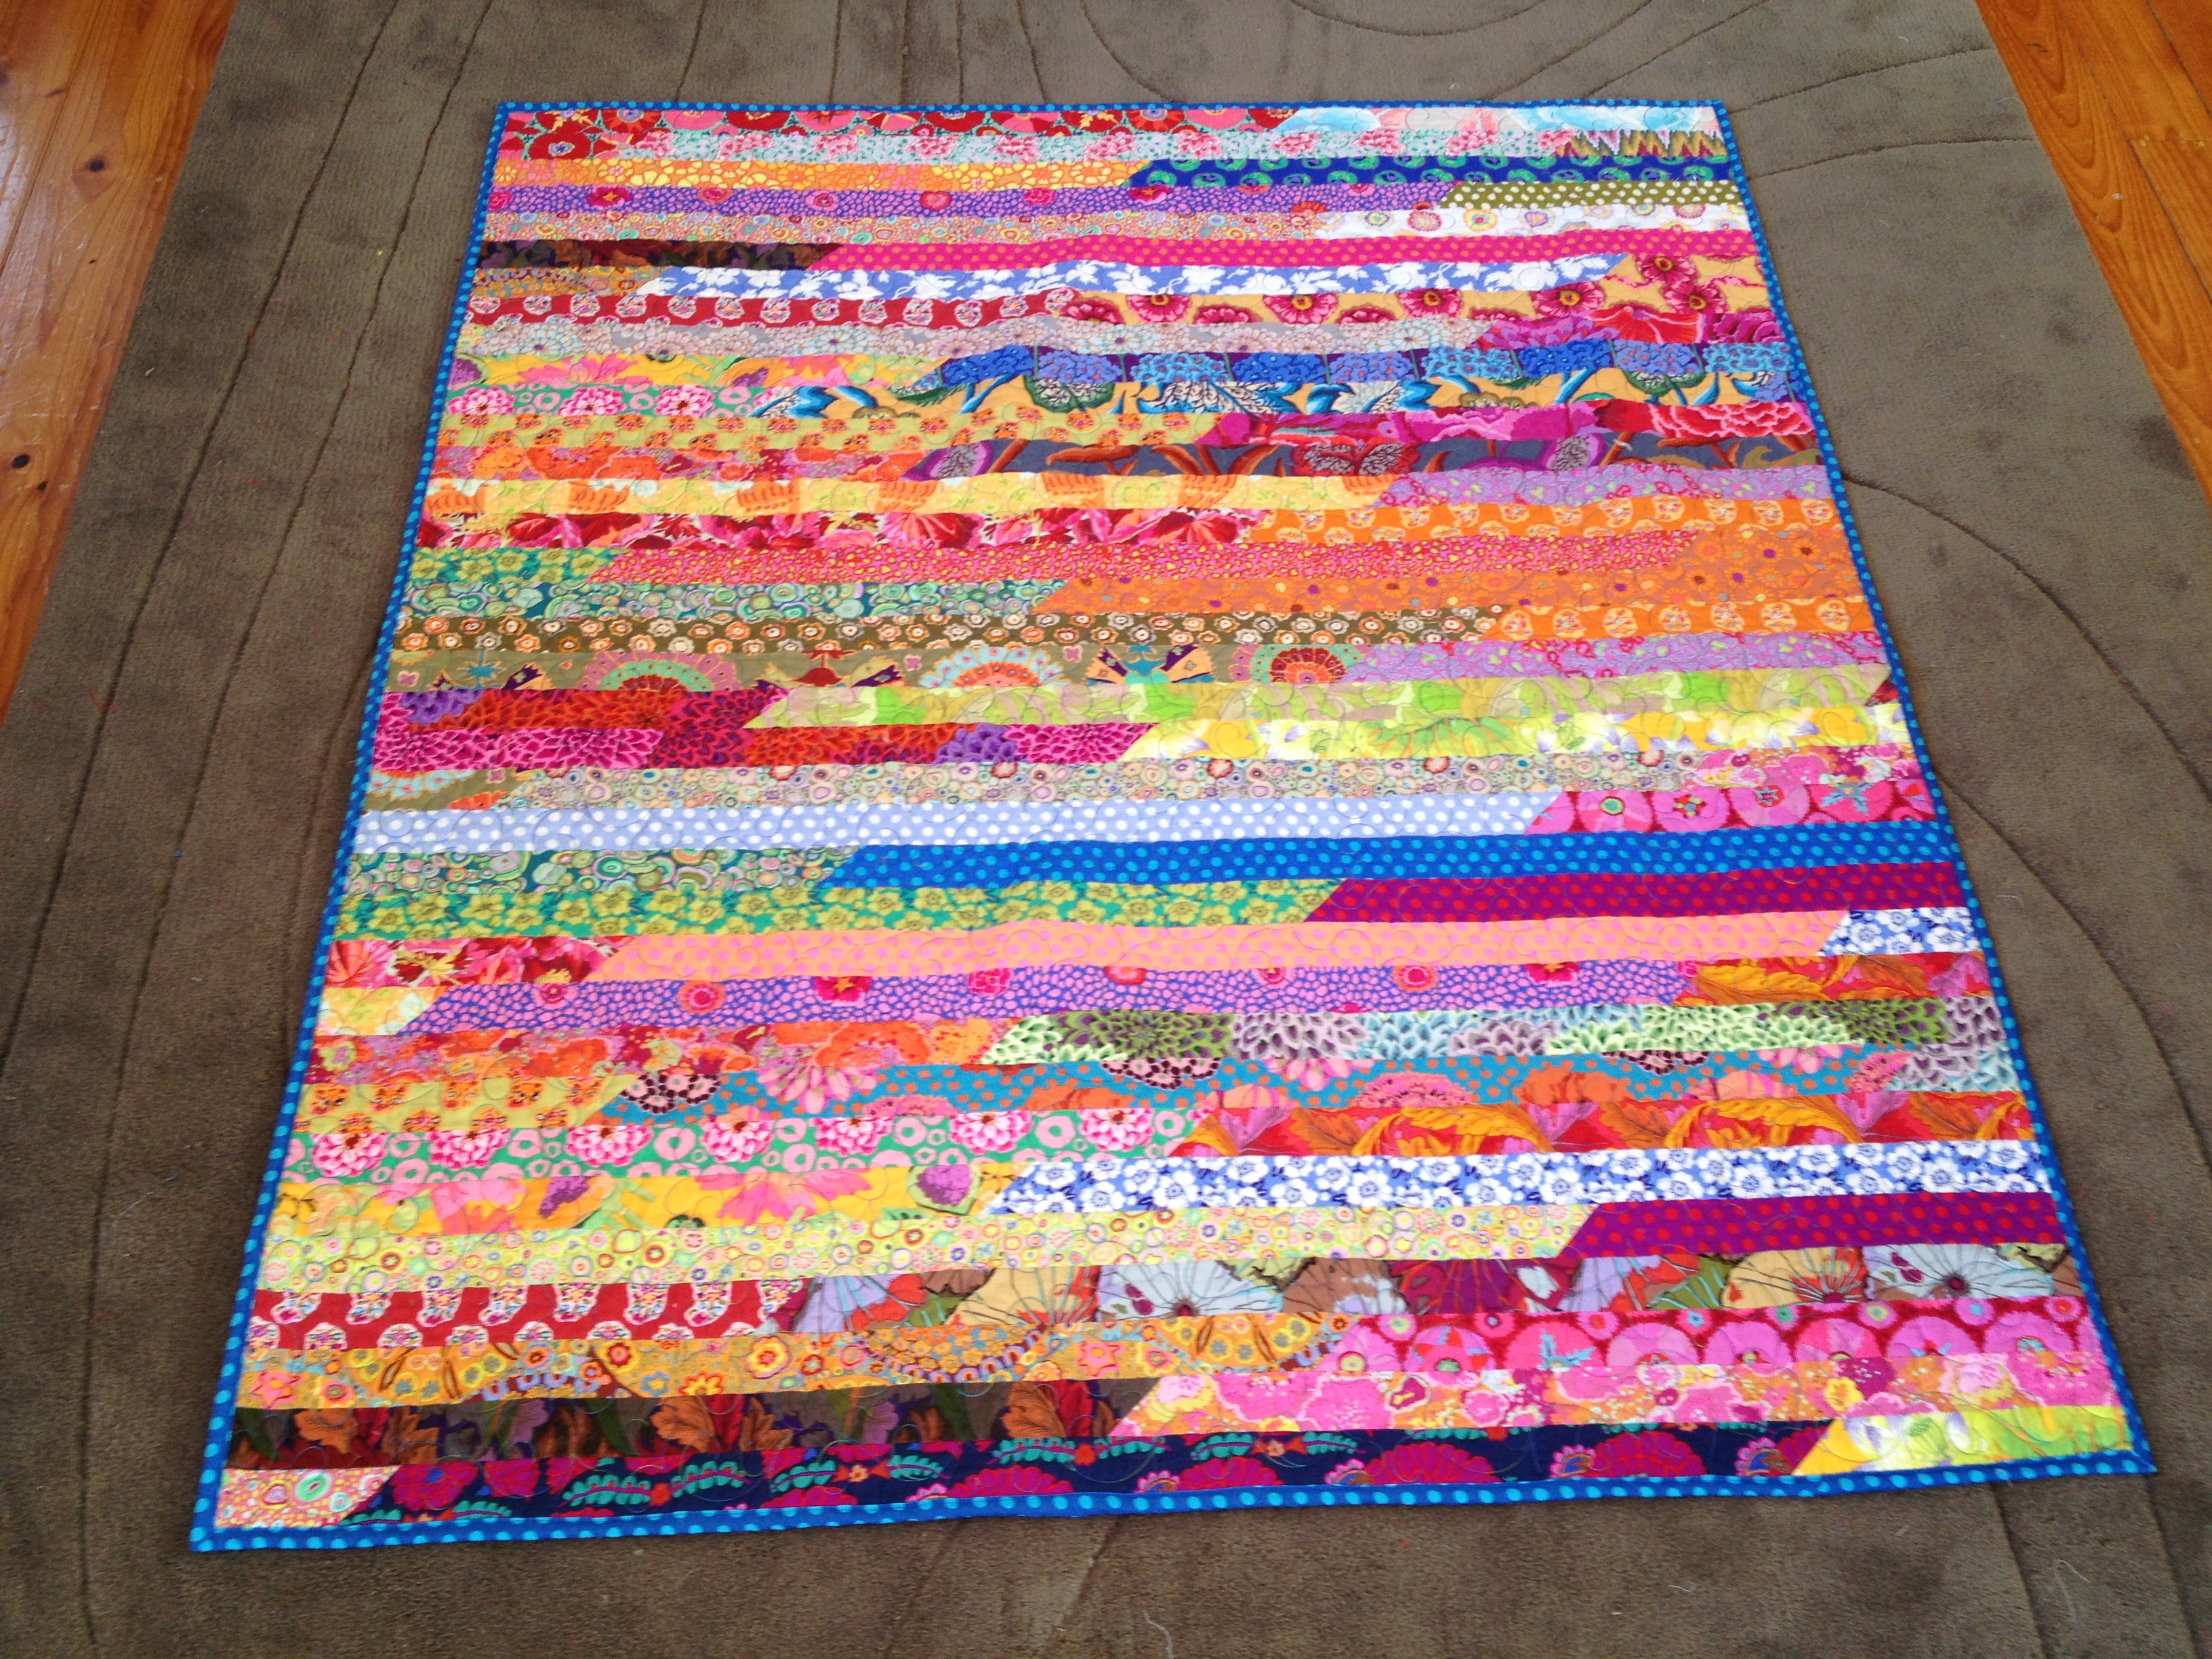 1000+ images about jelly roll 1600 quilts on Pinterest The jellies, Fabrics and Jelly roll ...